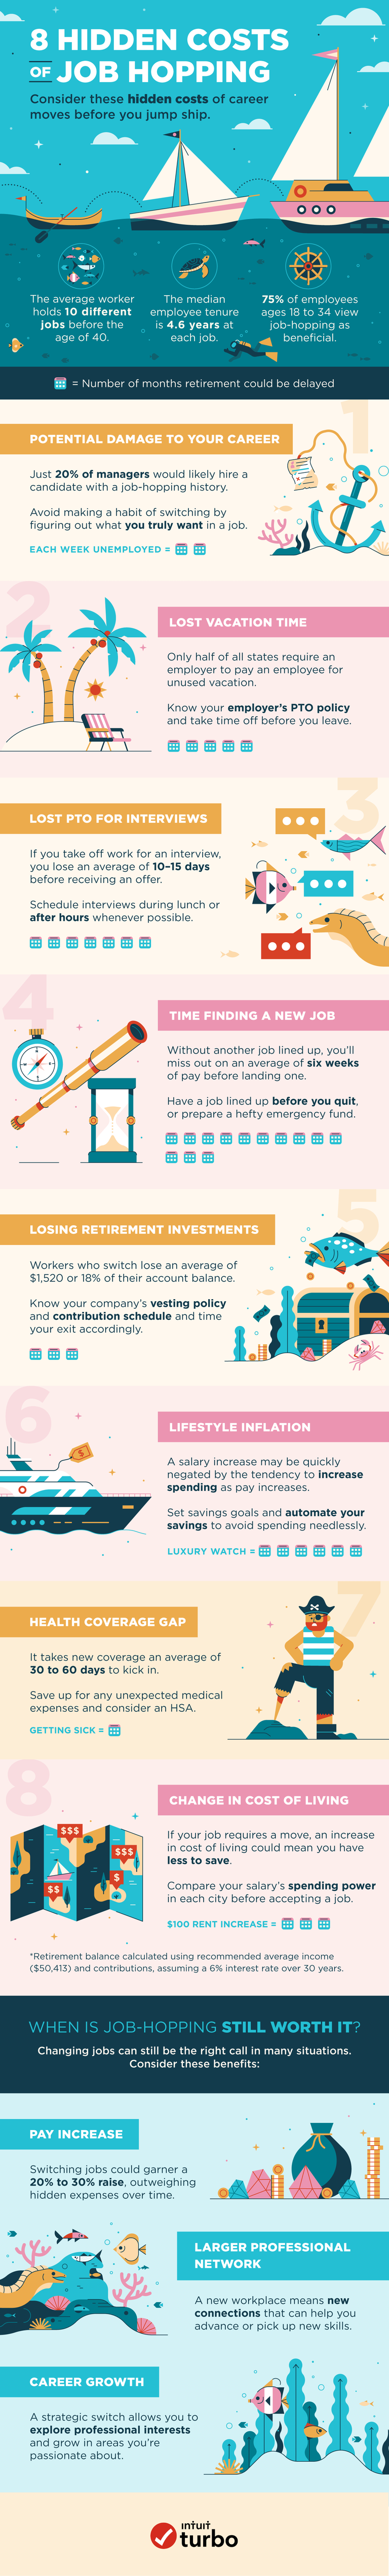 Hidden costs of job hopping infographic